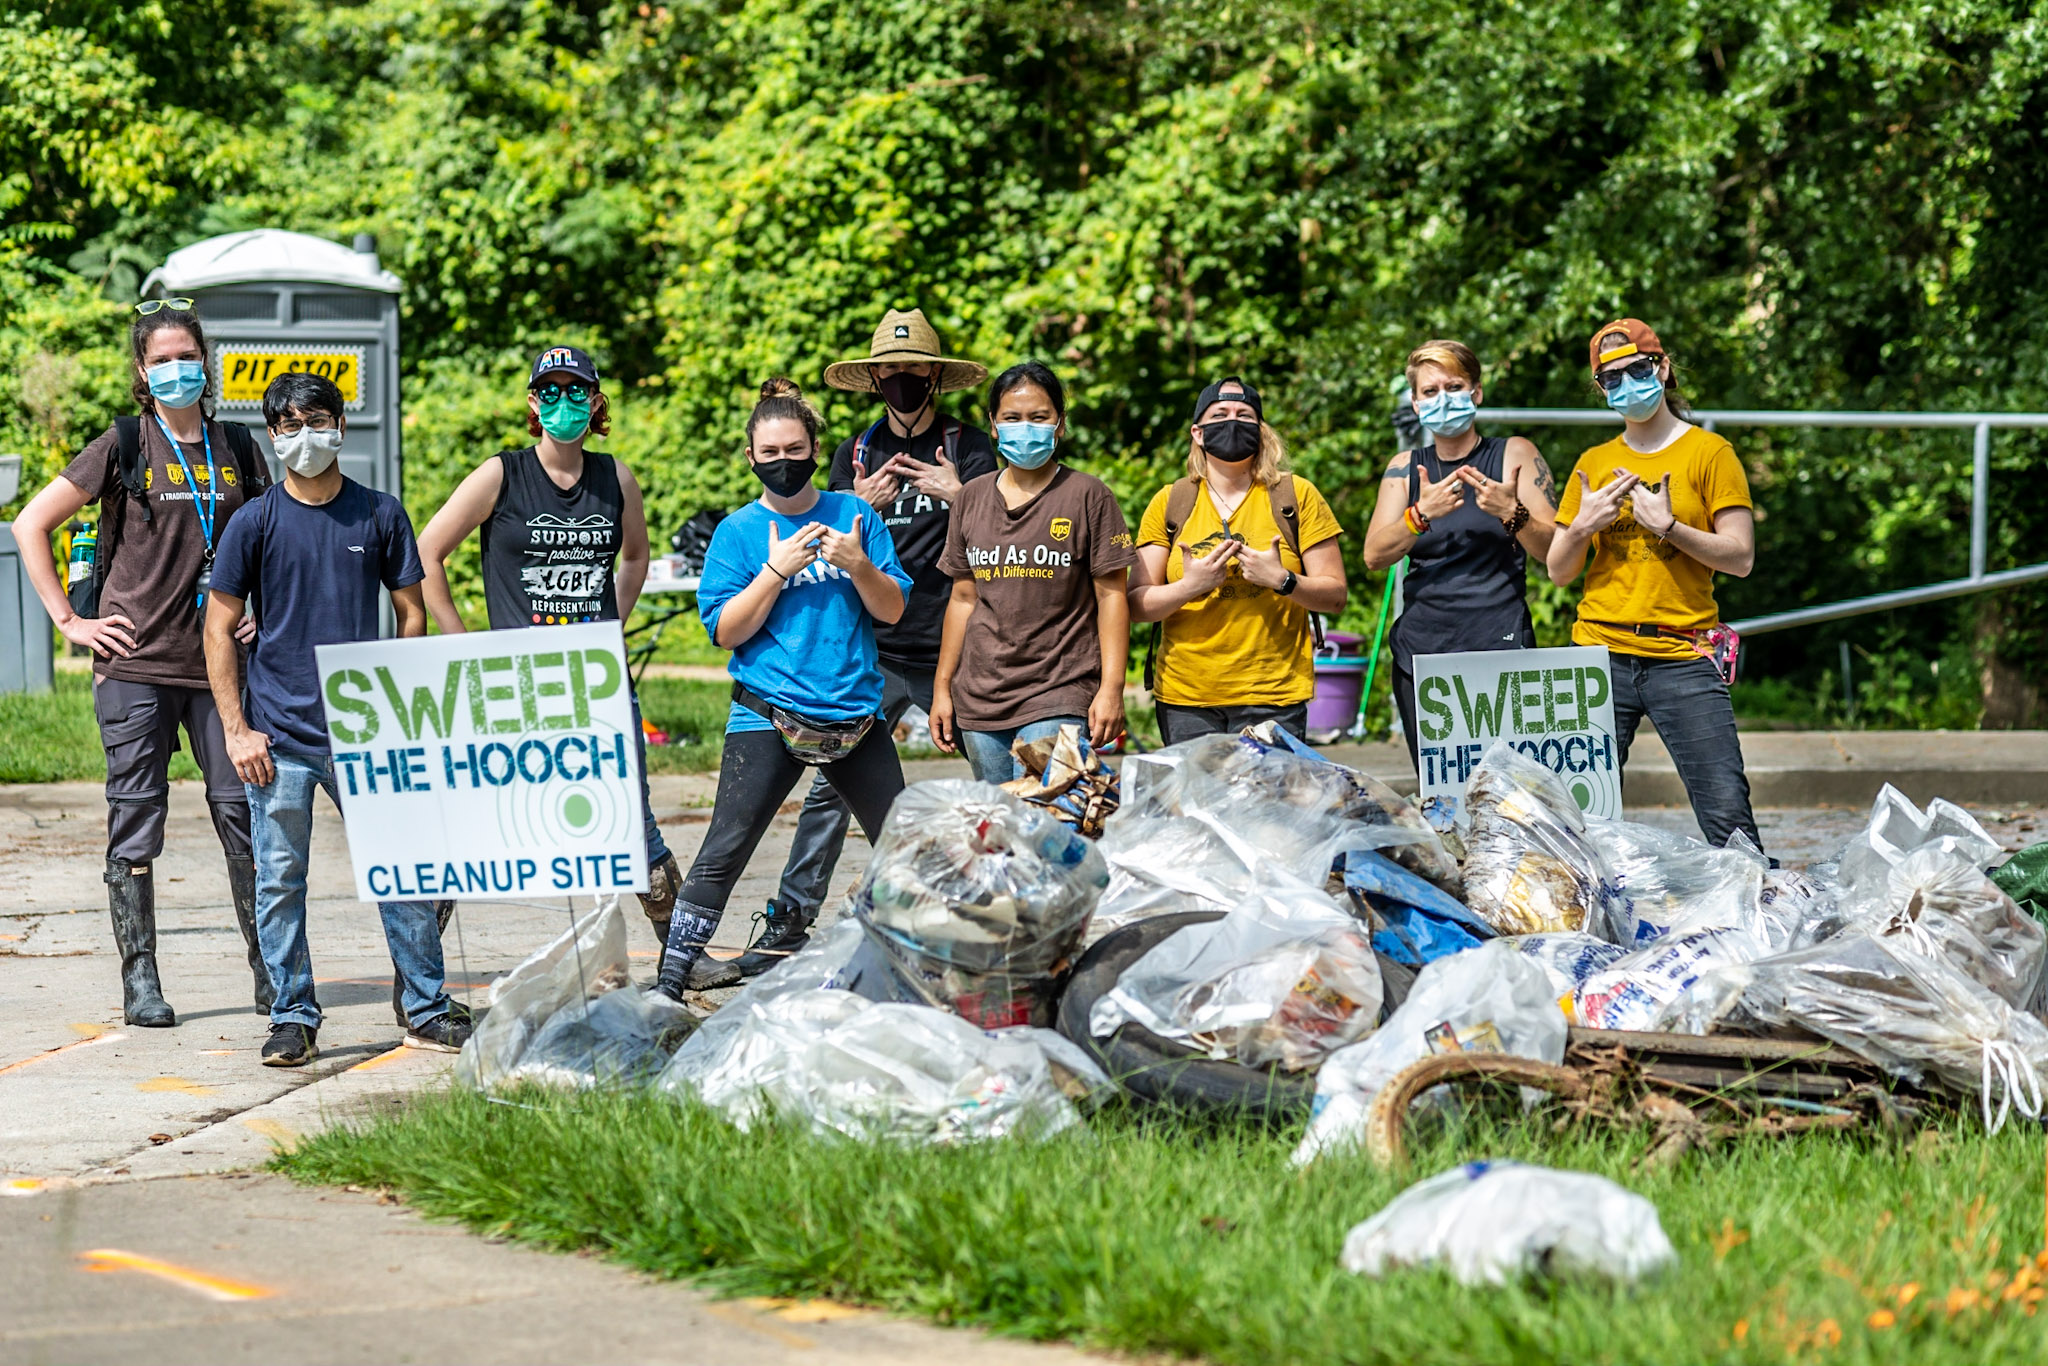 Volunteers gather around trash they've gathered next to sign that says Sweep the Hooch